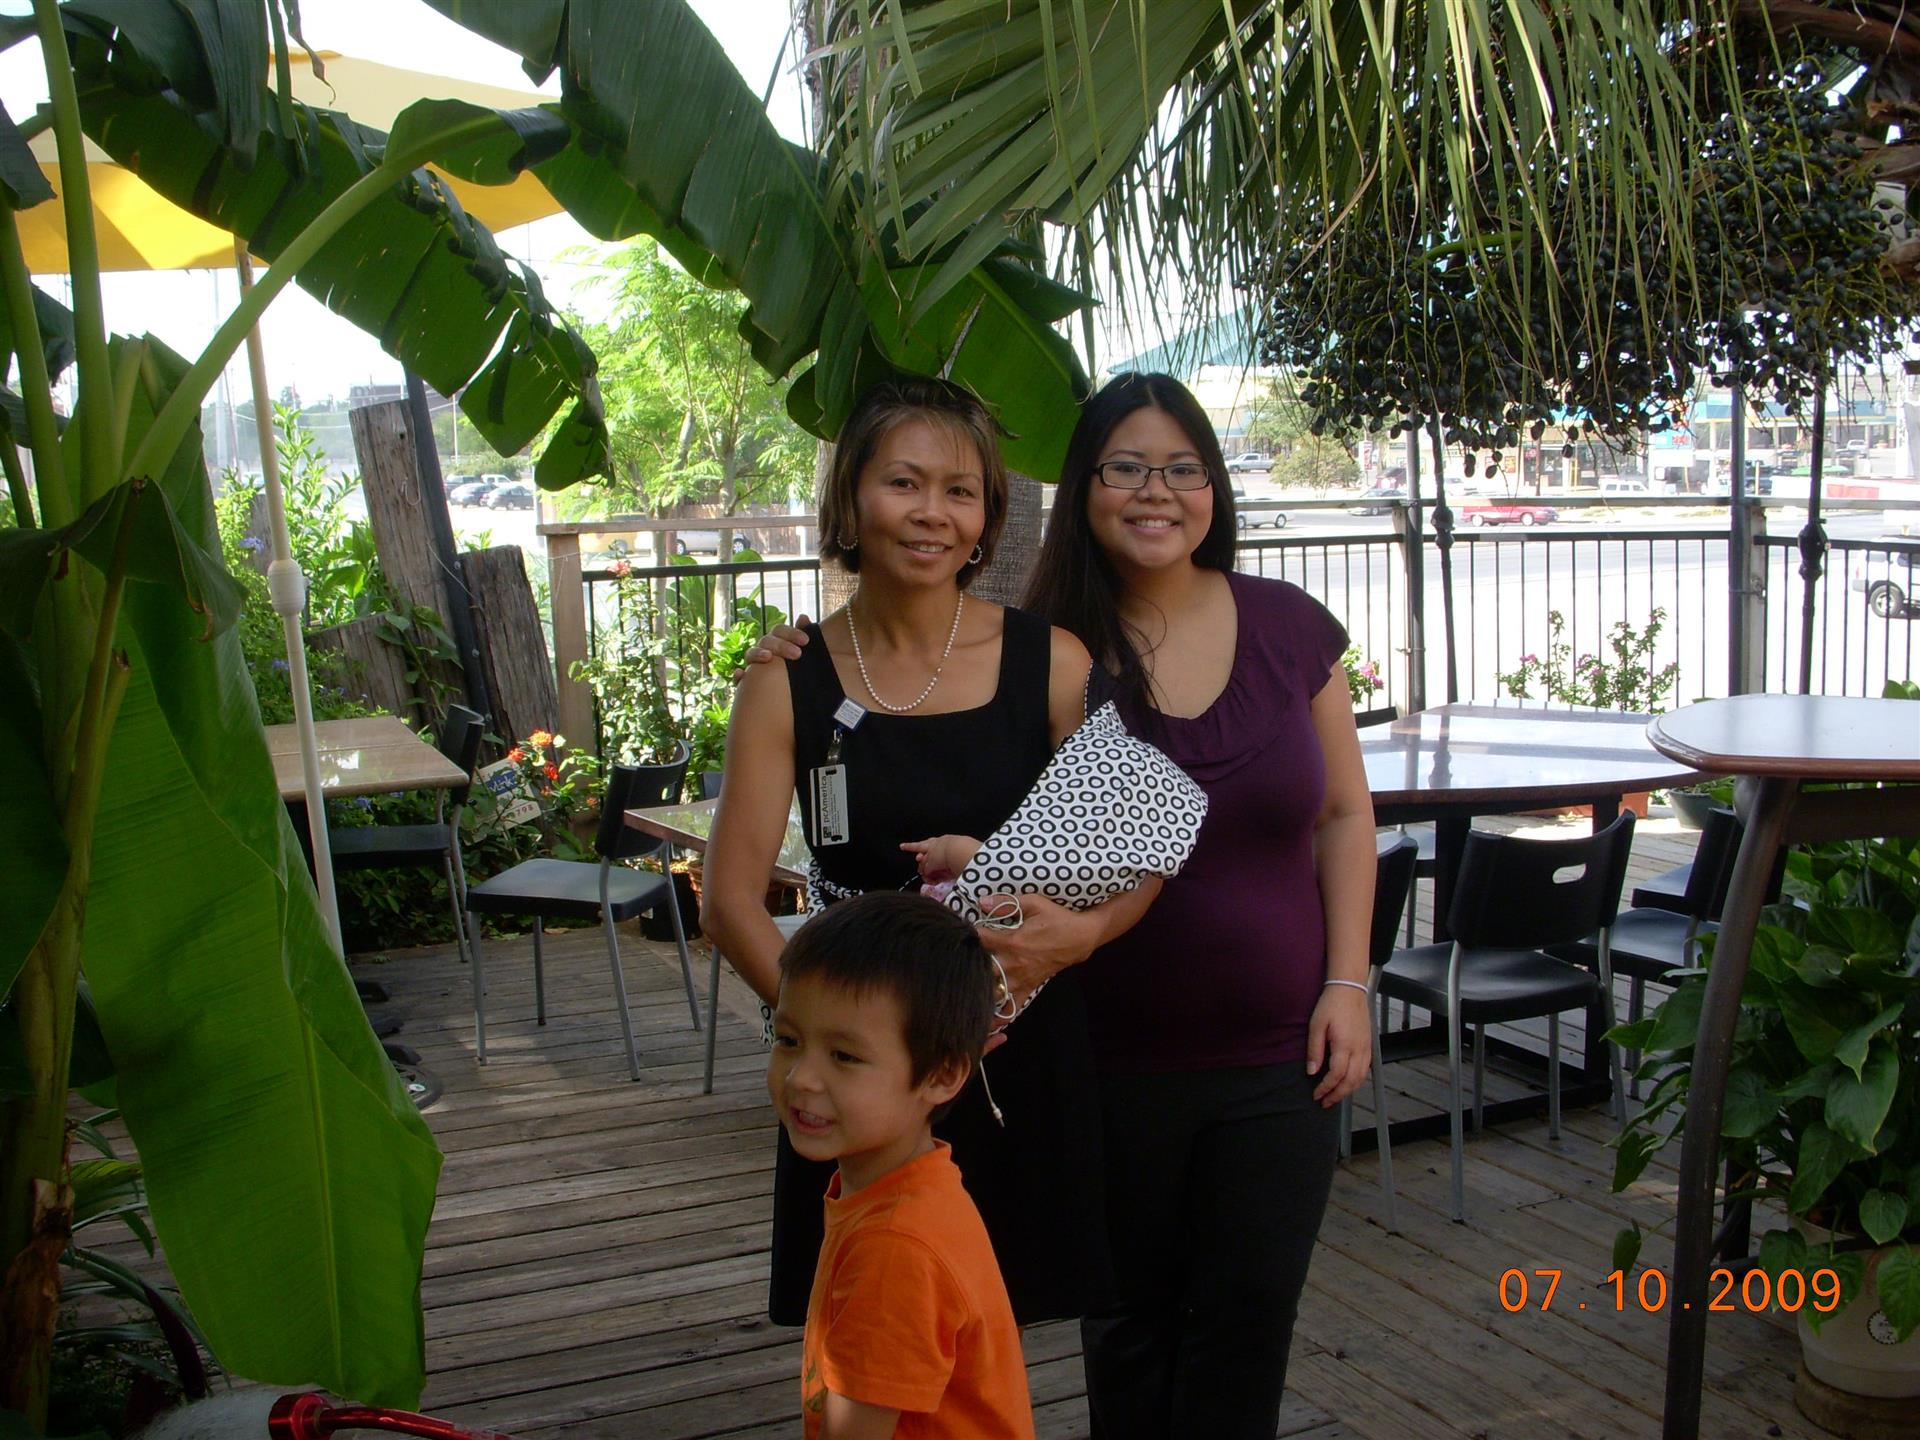 Two females and a child posing for picture on outdoor deck